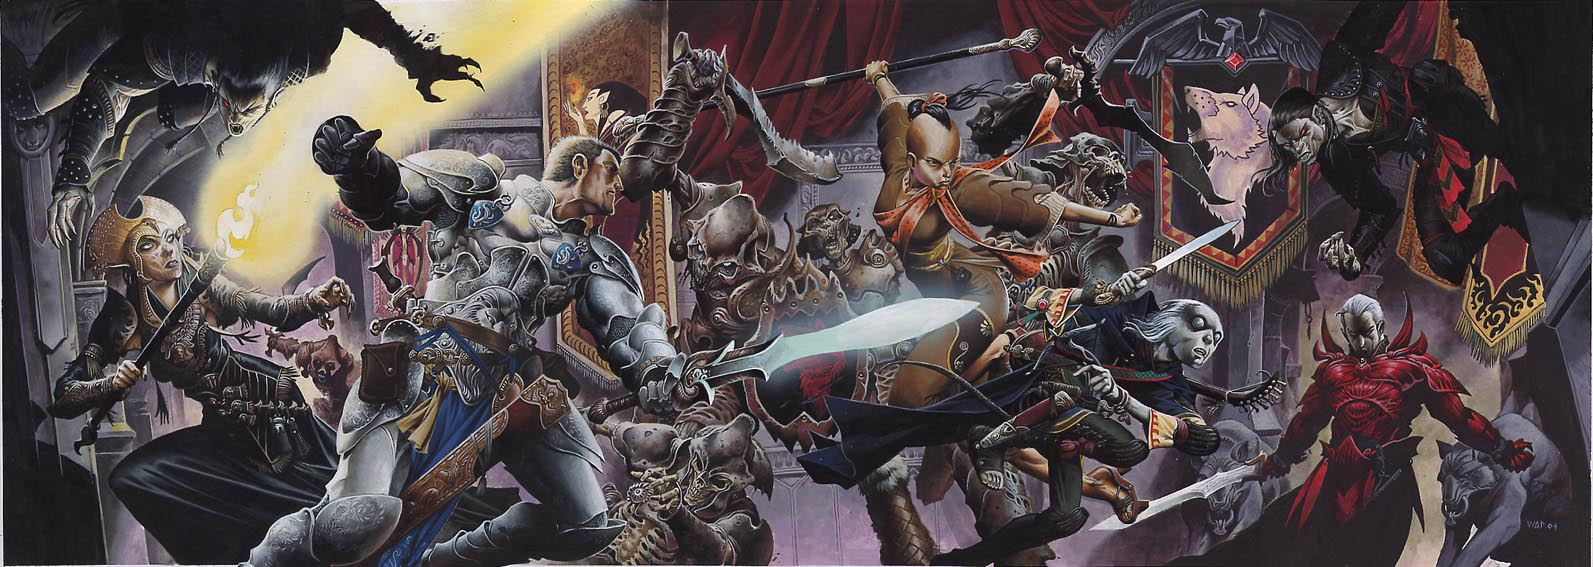 Eberron banner fight